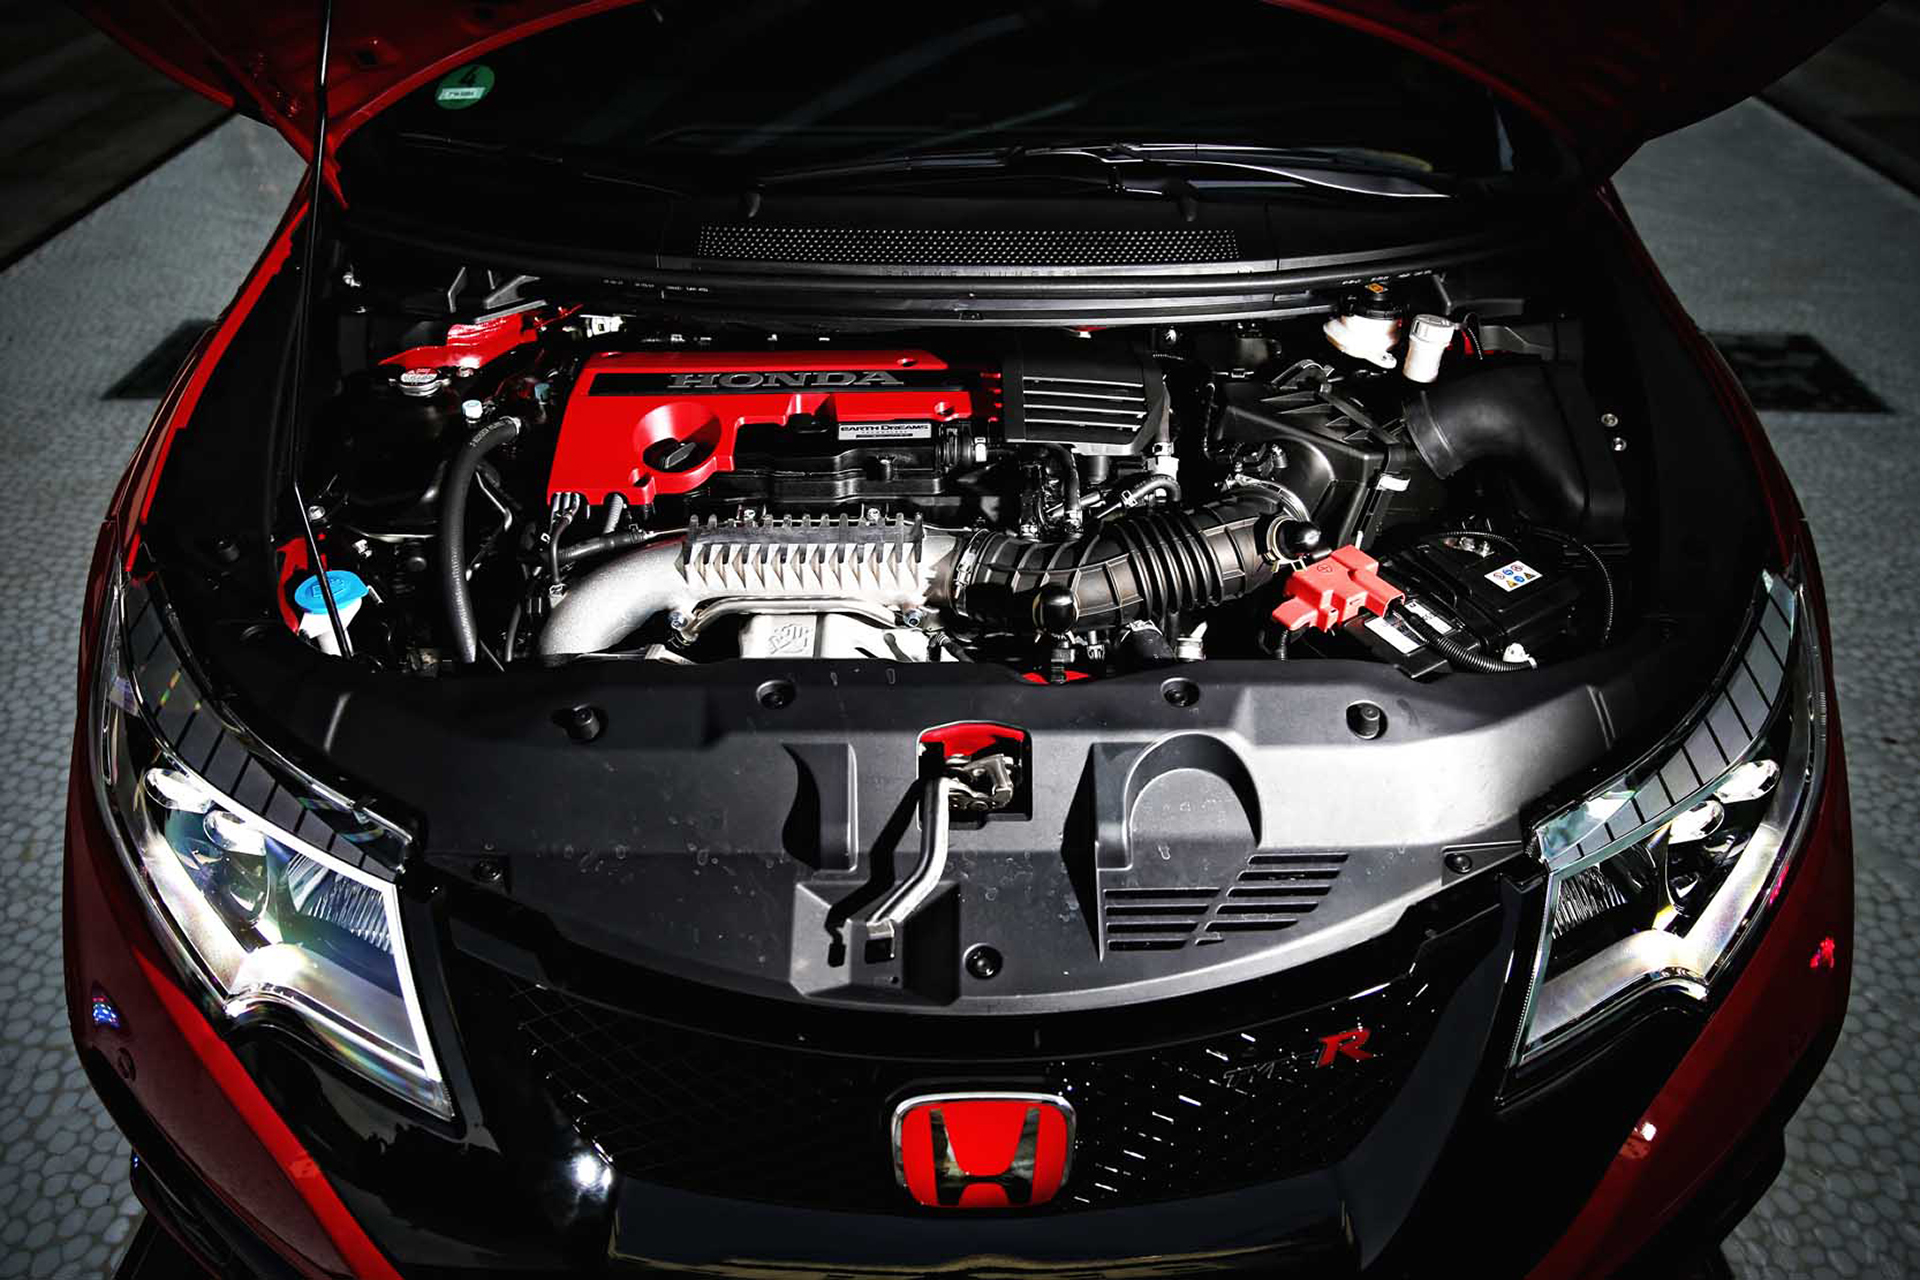 Honda Civic Type R - 2015 - under the hood / sous le capot